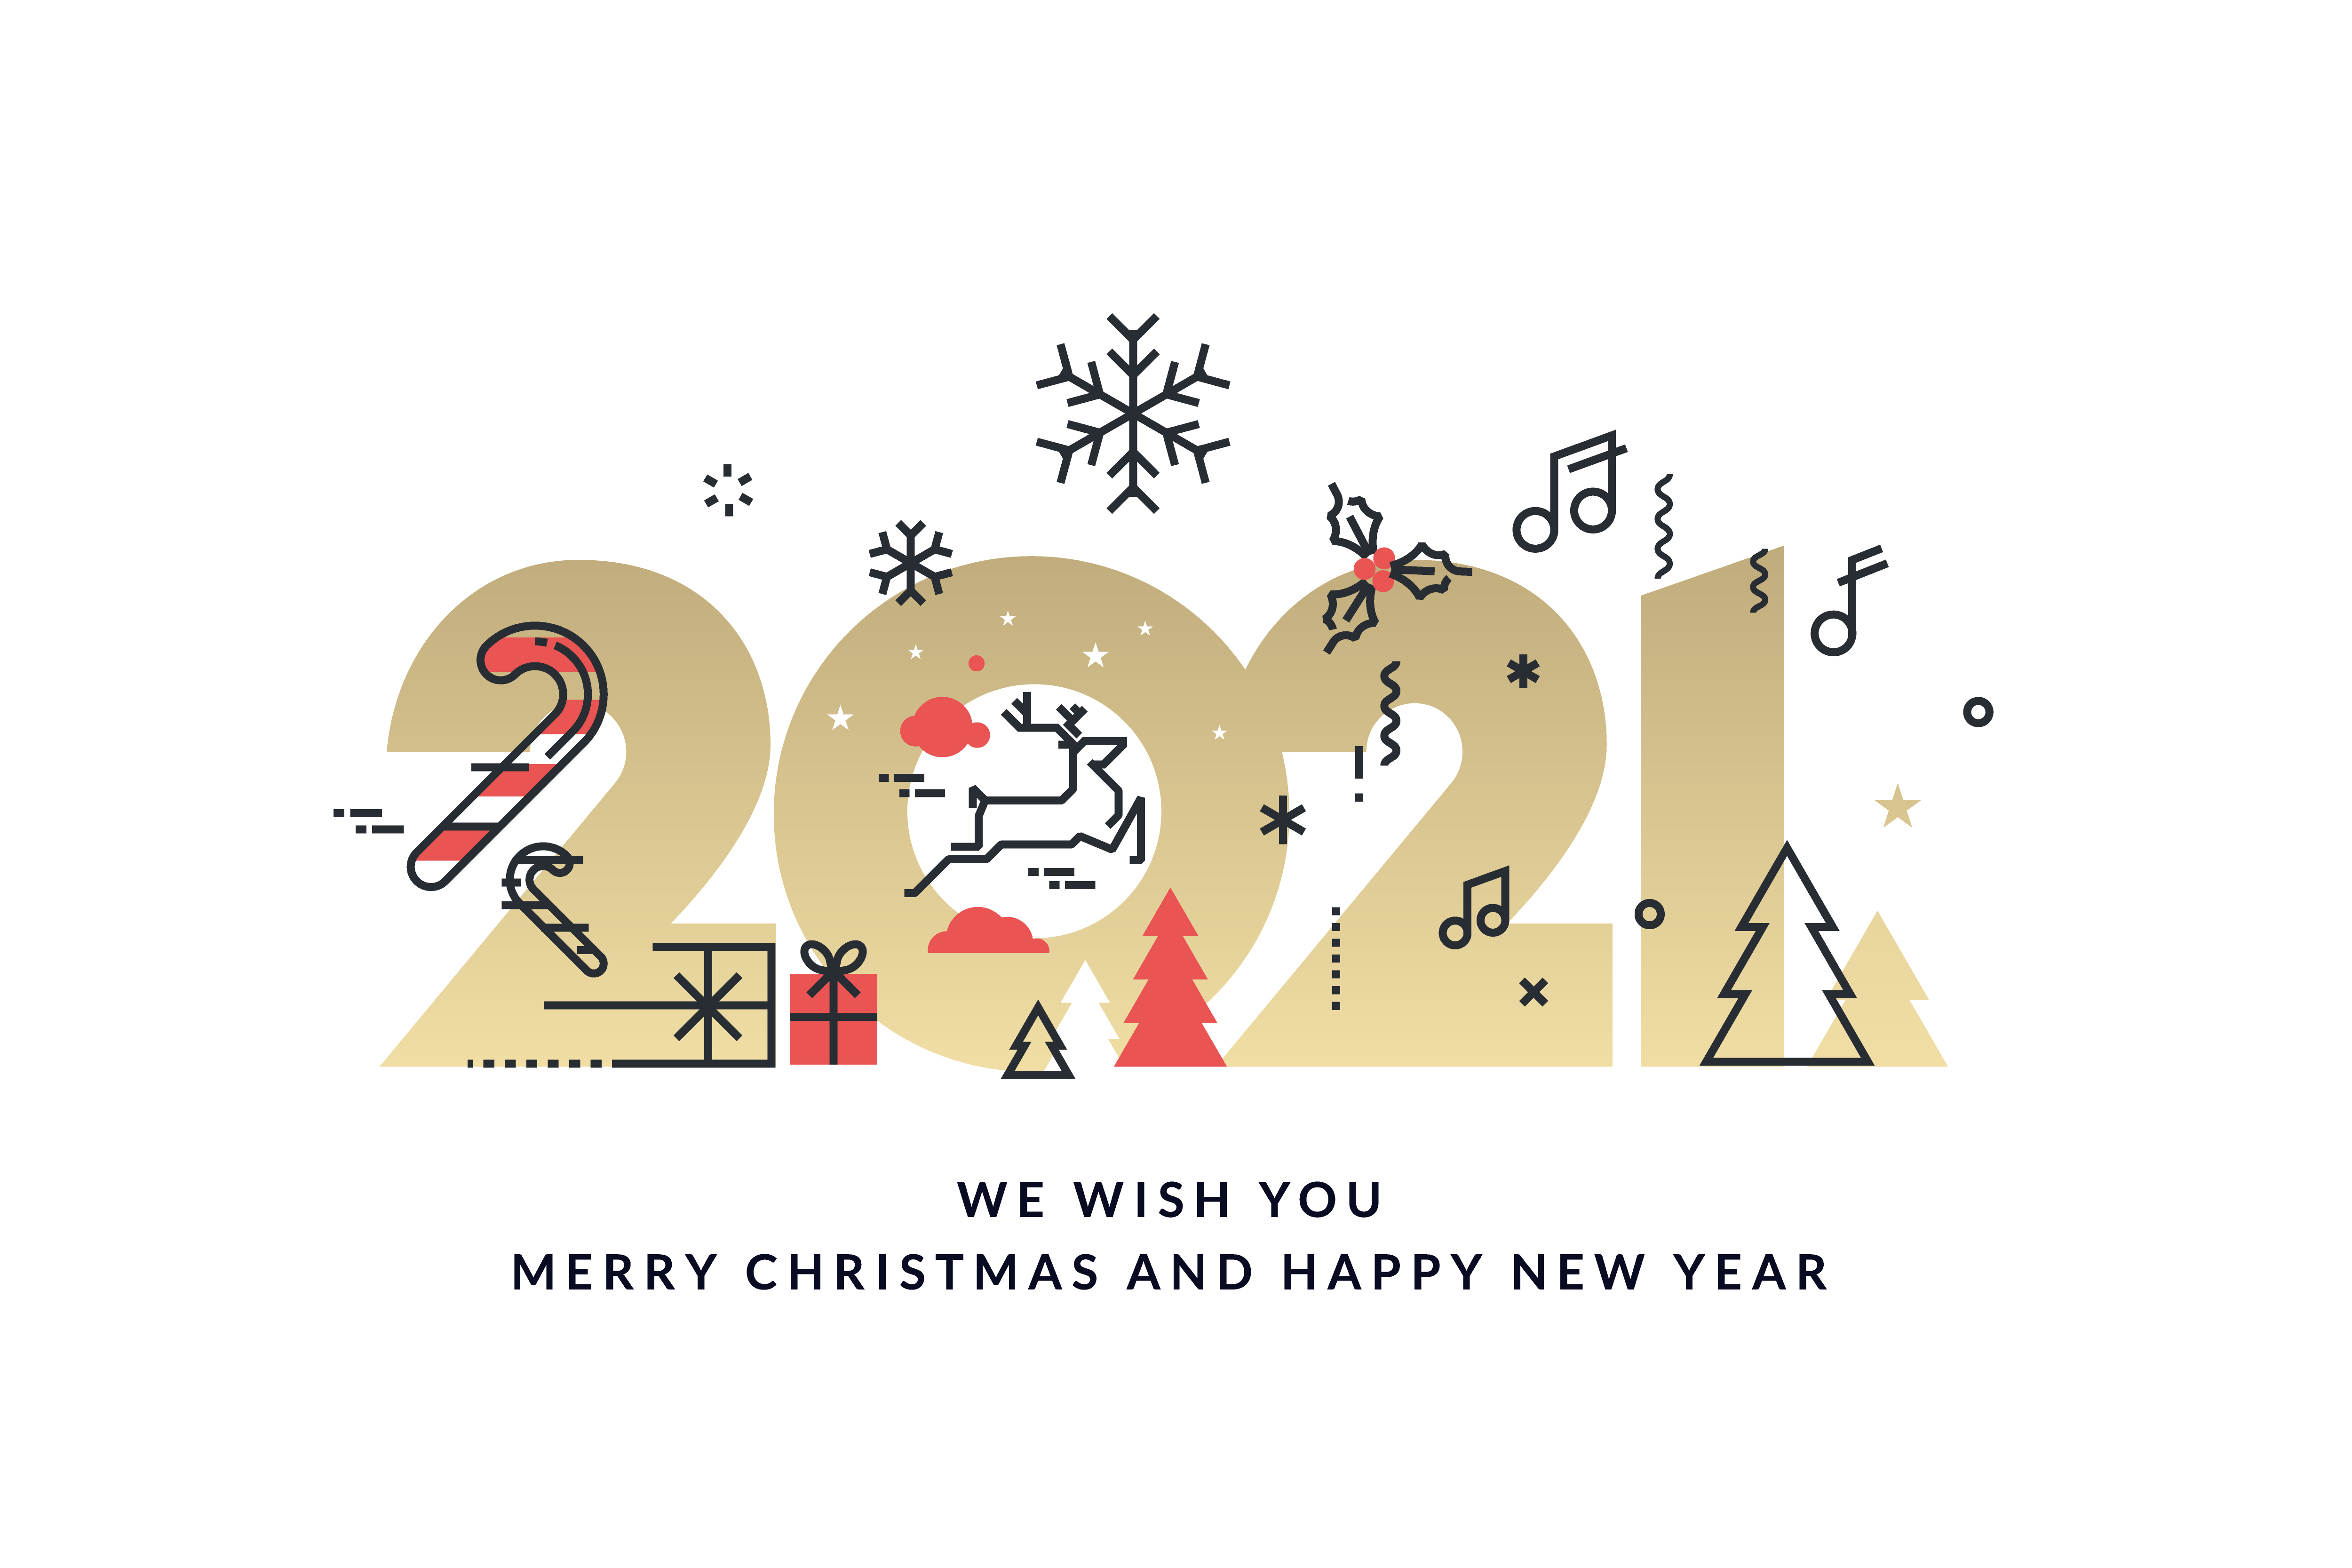 merry christmas and happy new year 2021 card download free vectors clipart graphics vector art vecteezy